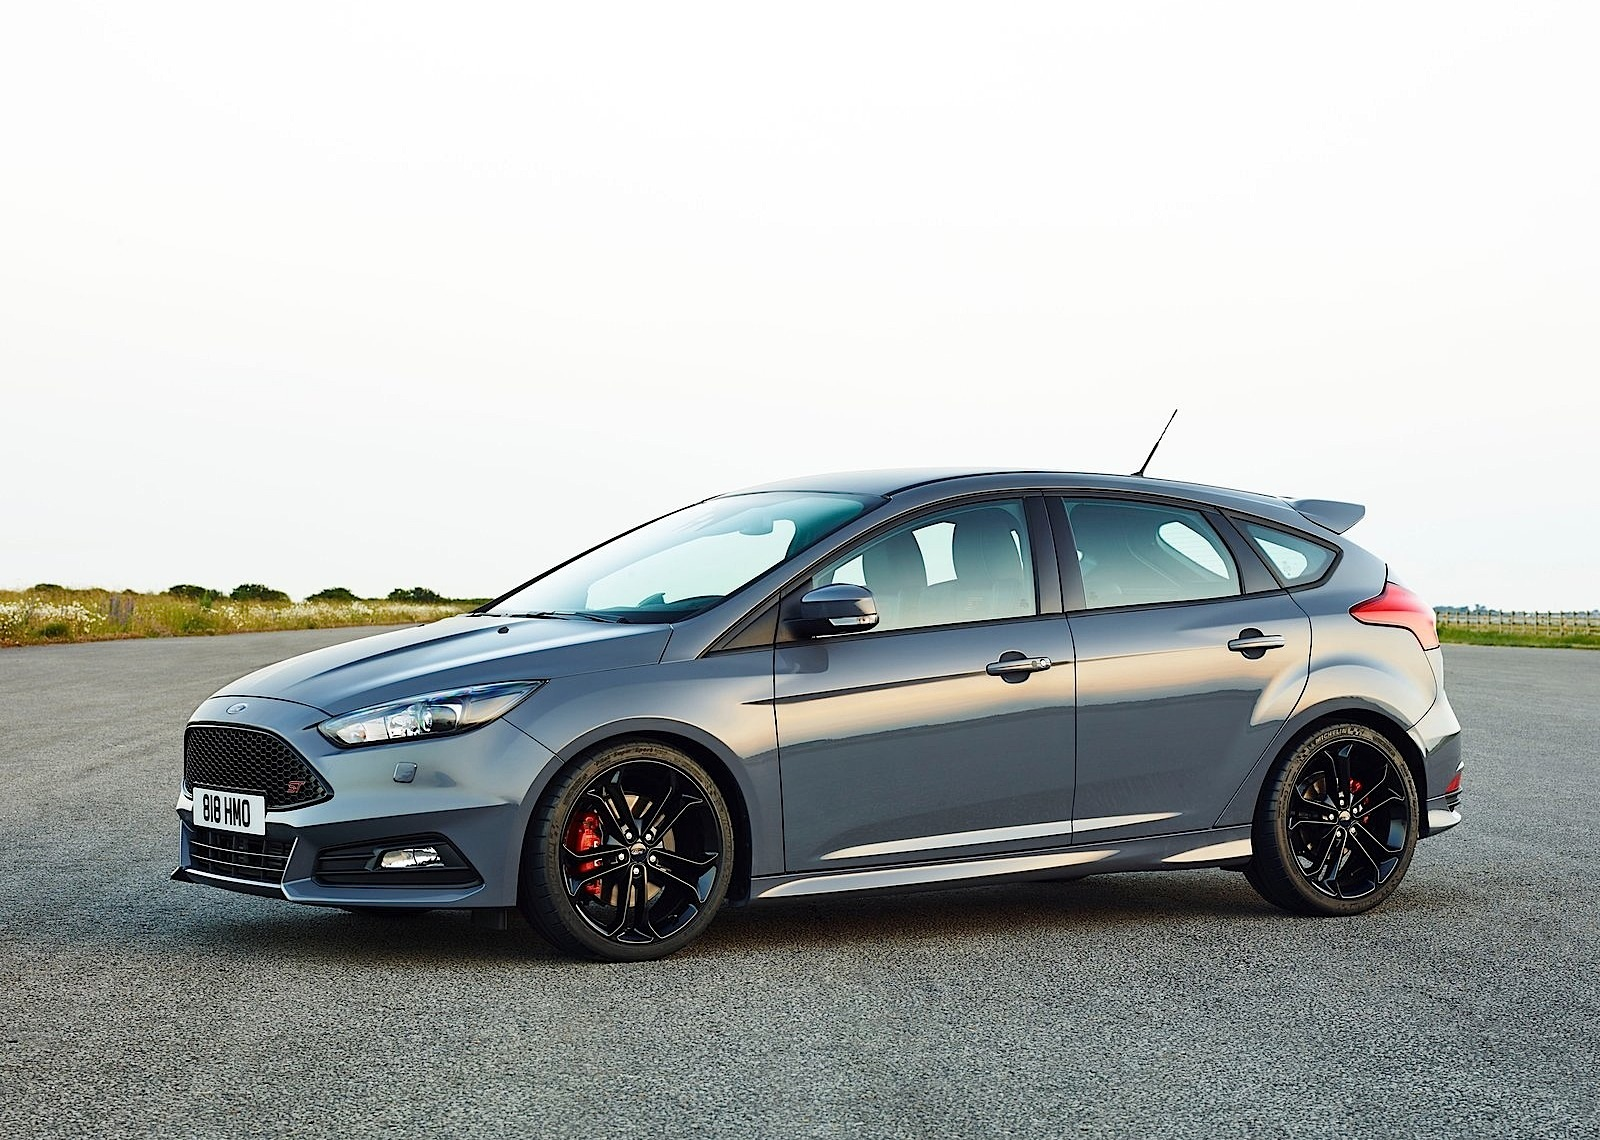 ford focus st 5 doors specs 2014 2015 2016 2017 2018 autoevolution. Black Bedroom Furniture Sets. Home Design Ideas